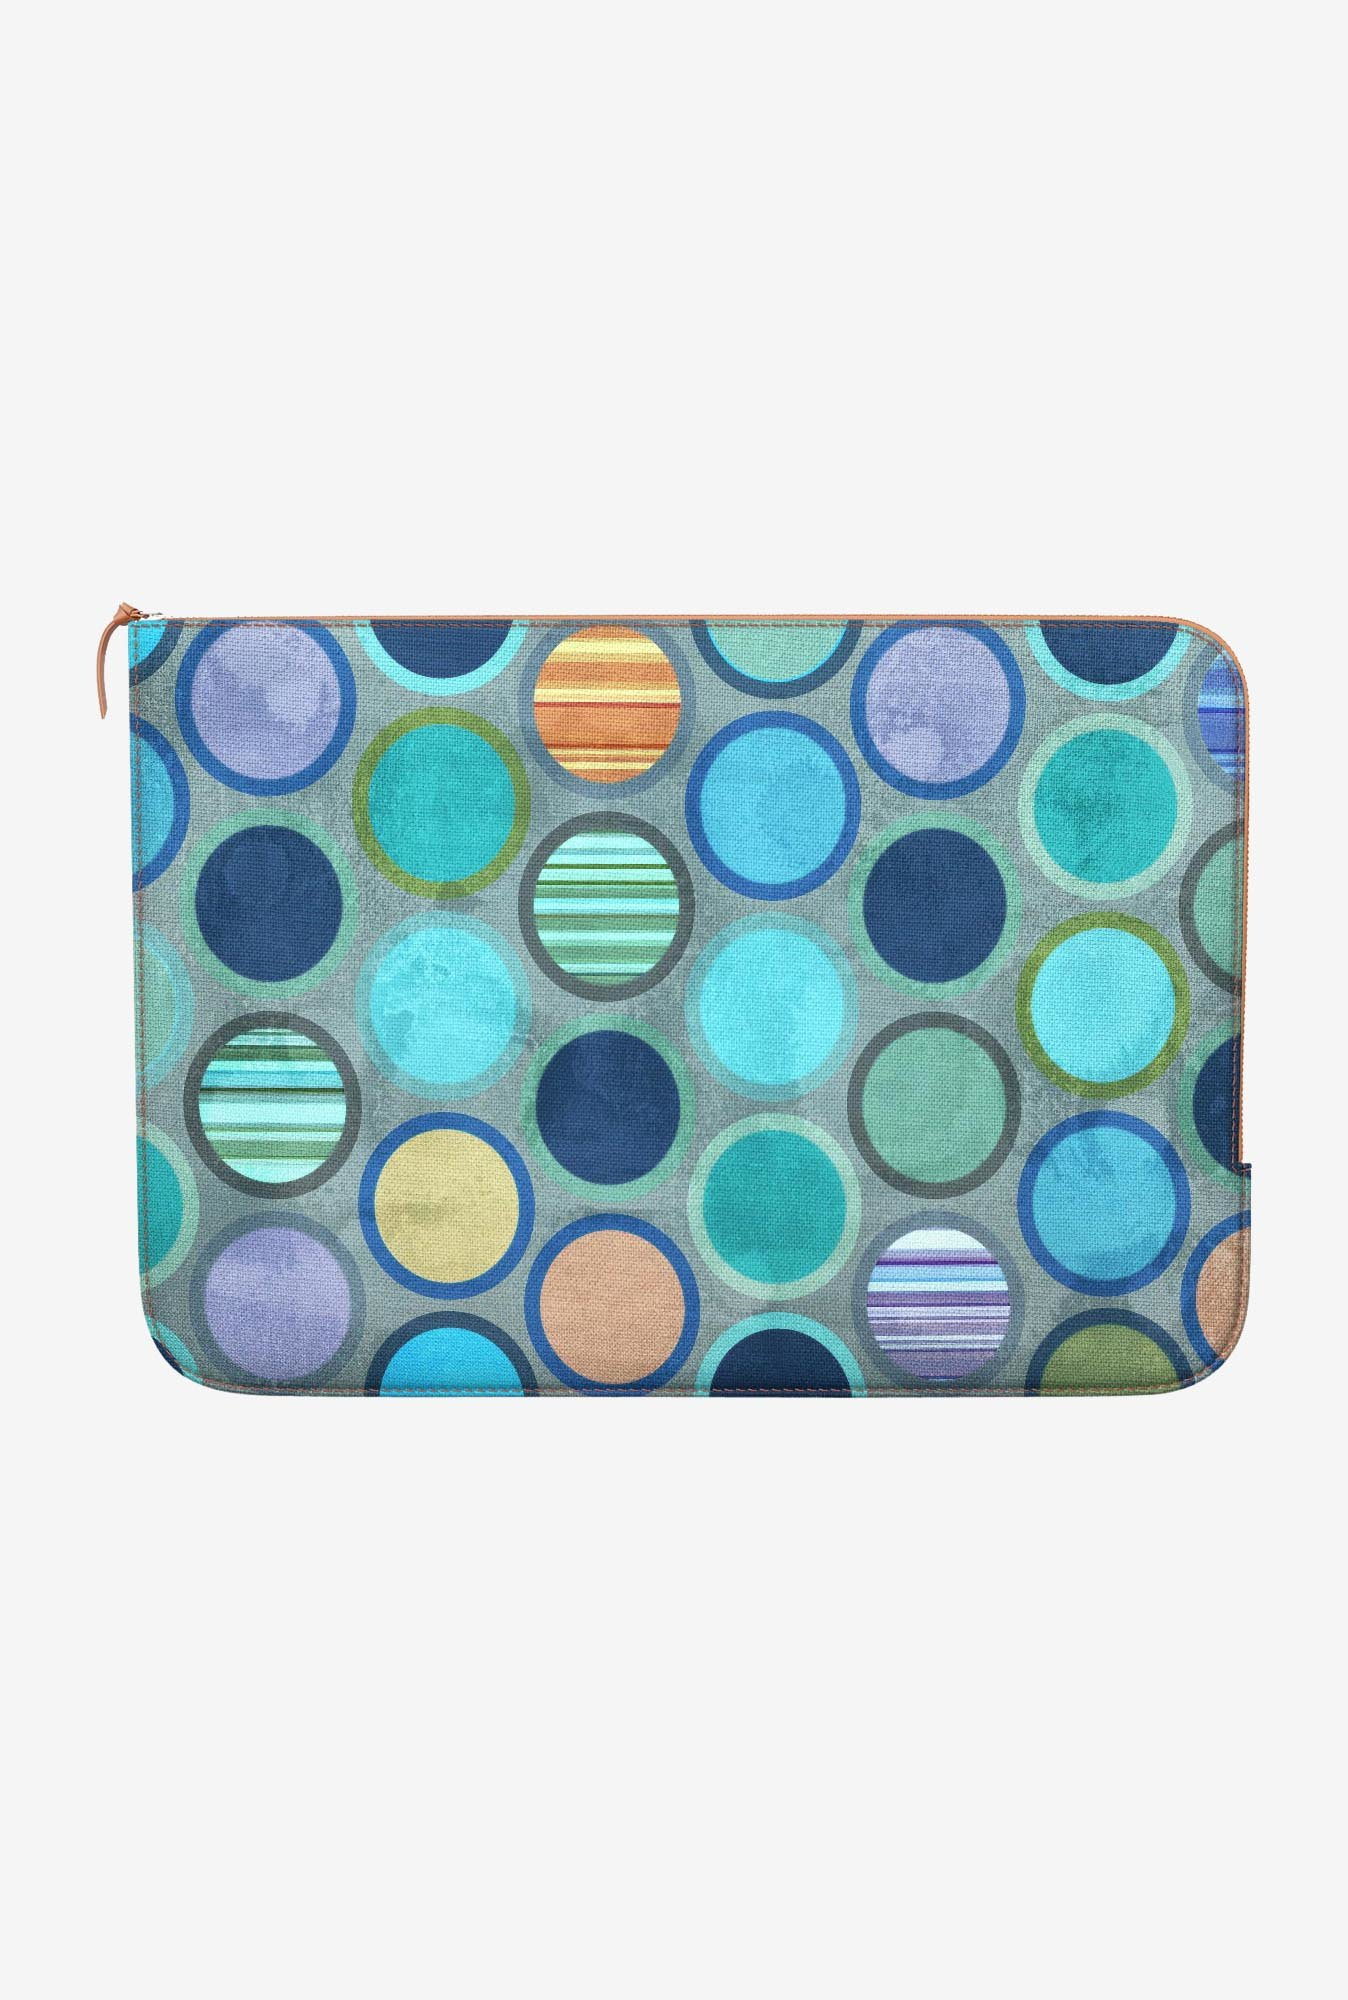 DailyObjects Paint Pots MacBook Pro 13 Zippered Sleeve